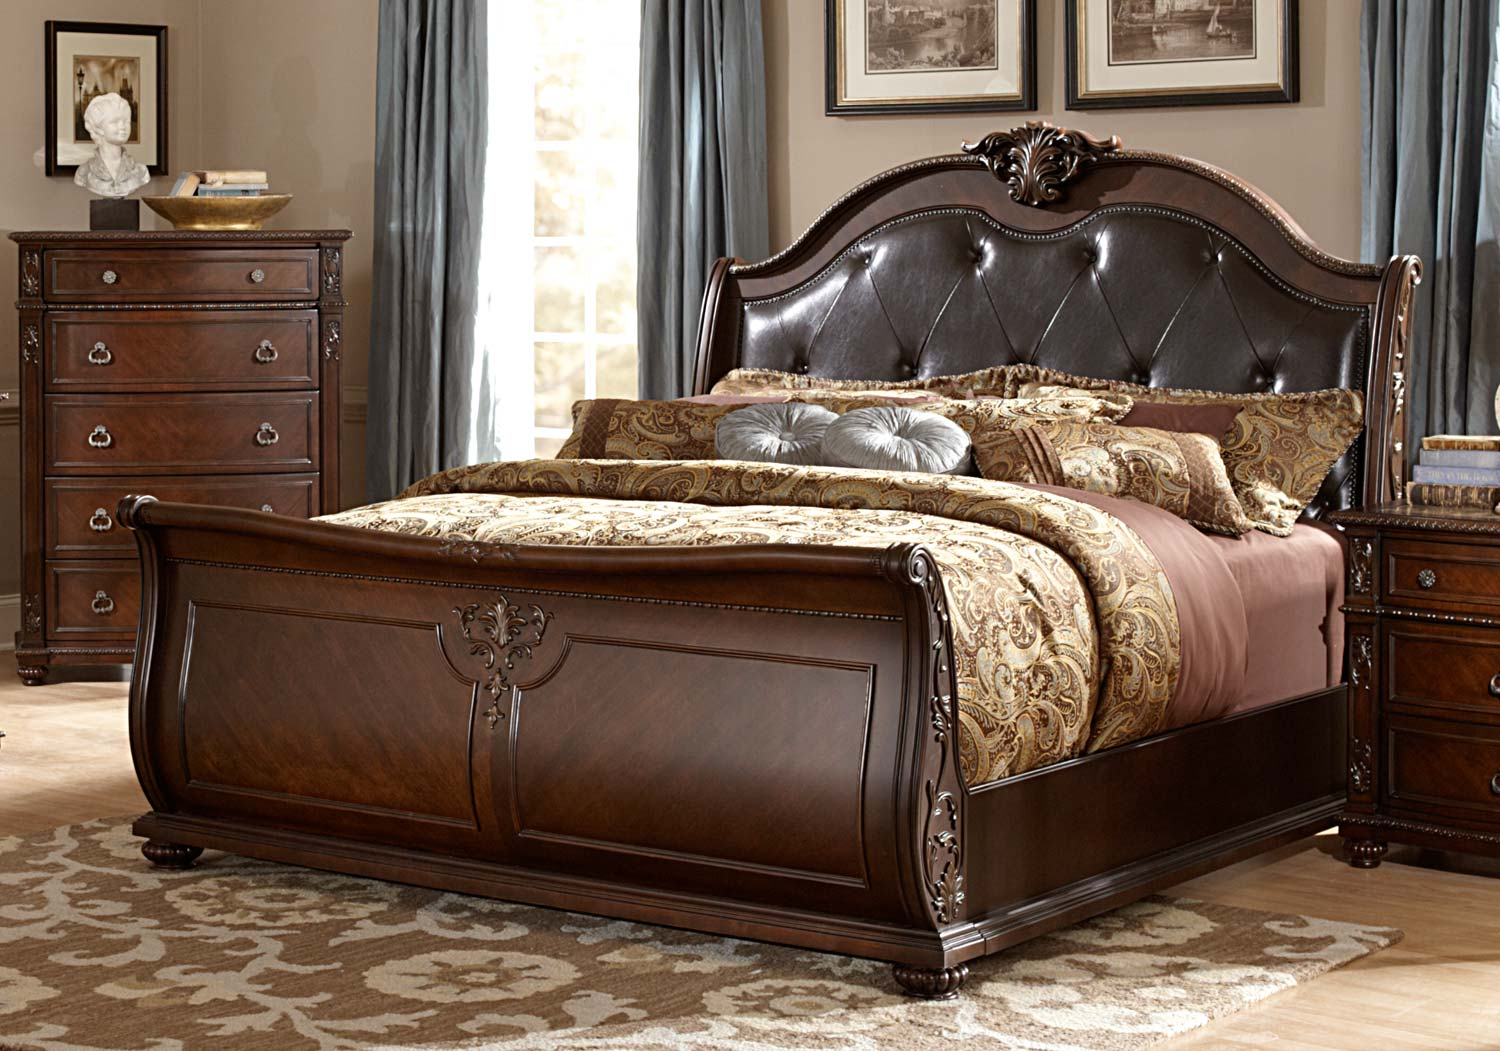 Homelegance Hillcrest Manor Sleigh Bed - Cherry